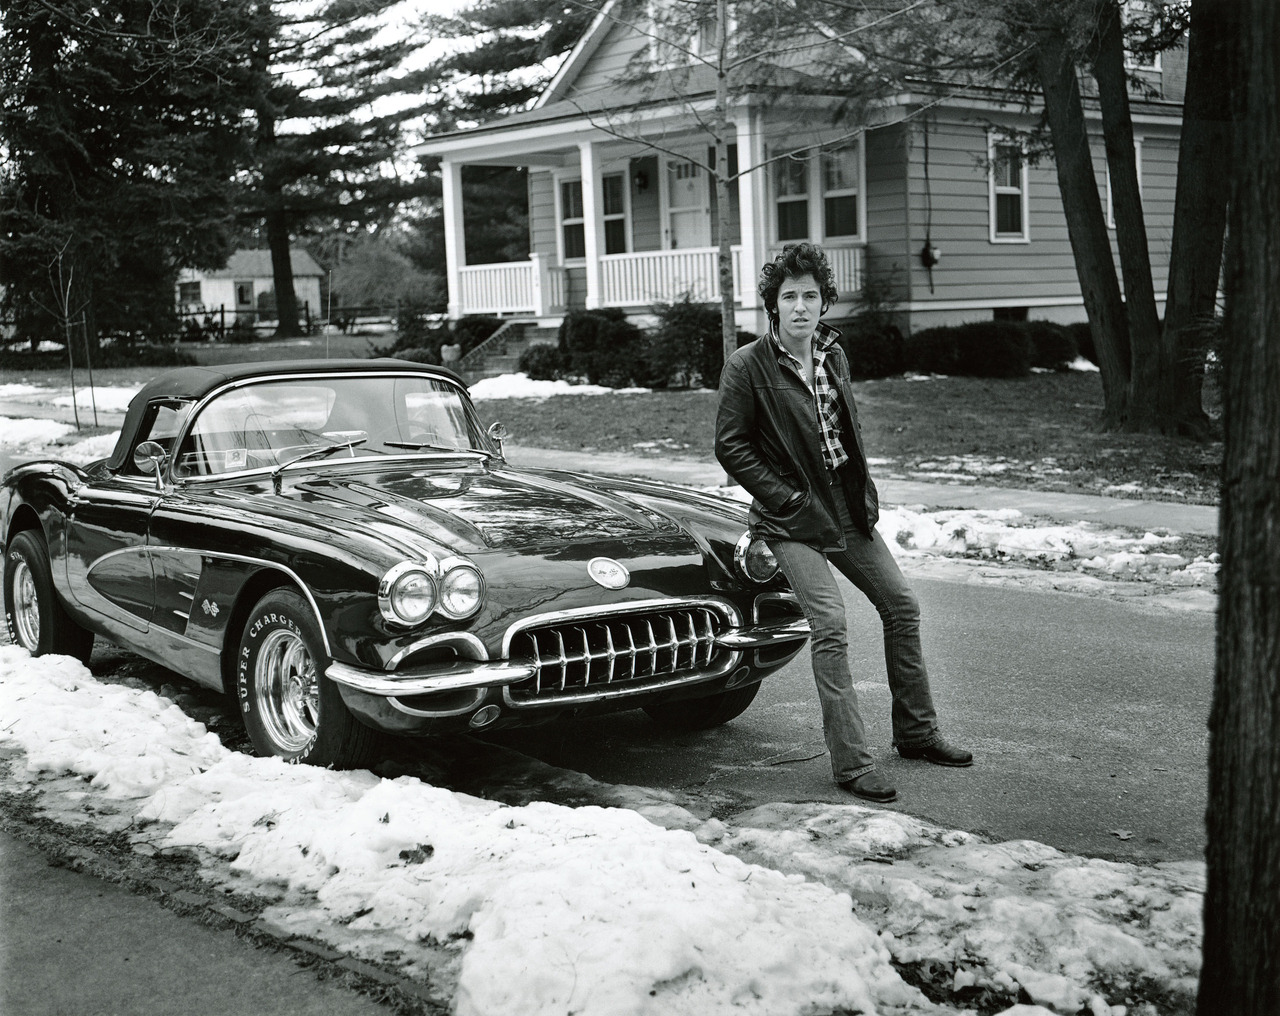 theimpossiblecool:  Bruce. photo by Bruce Stefanko  I want Bruce's car!!!! IT'S PERFECT!!! THAT'S WHAT I WANT.